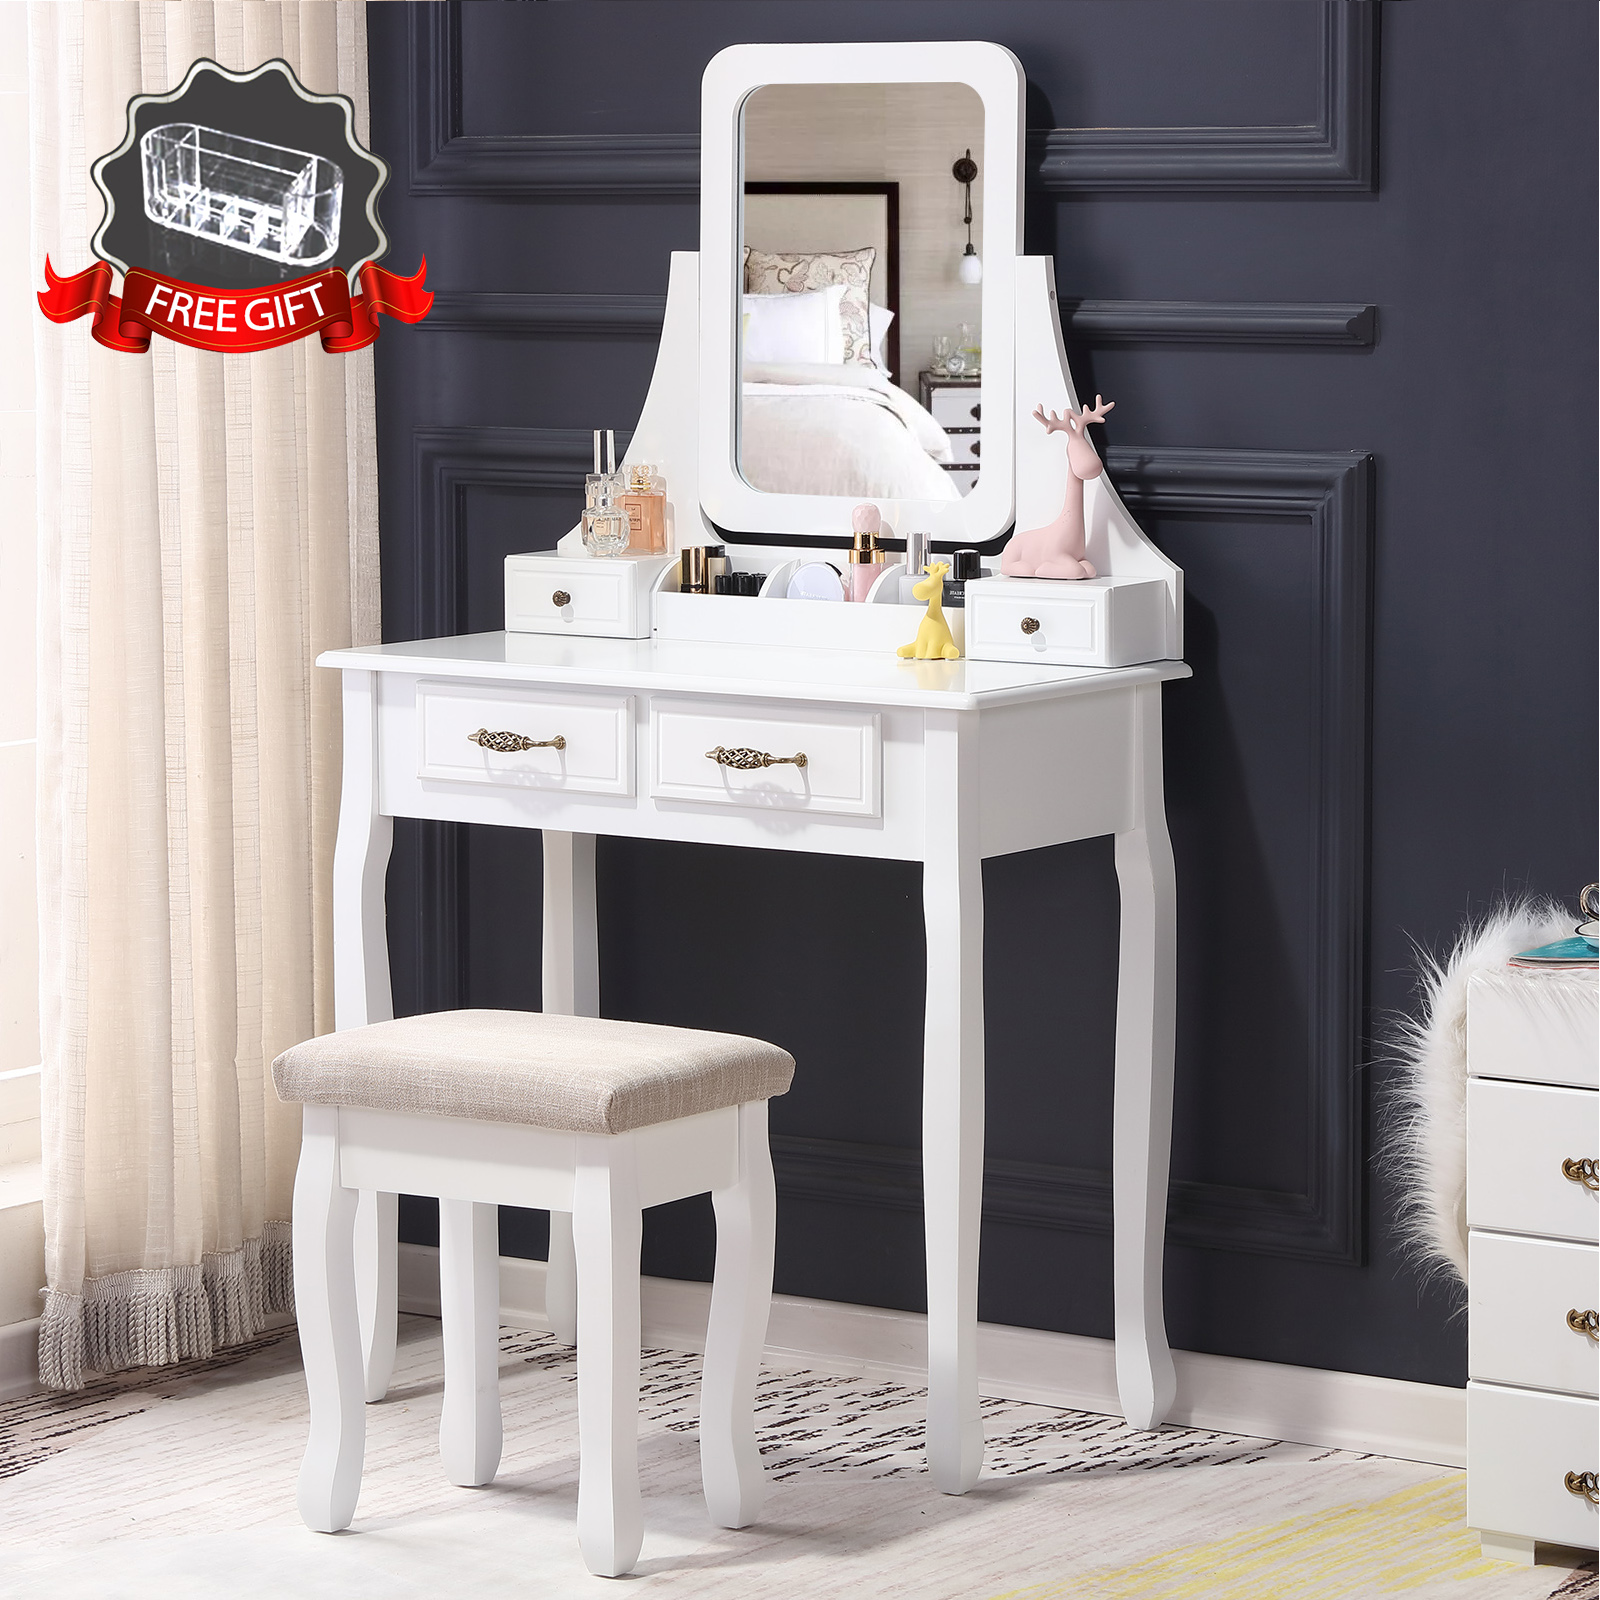 details about makeup vanity dressing table w/stool 4 drawers&mirror jewelry  wood desk white